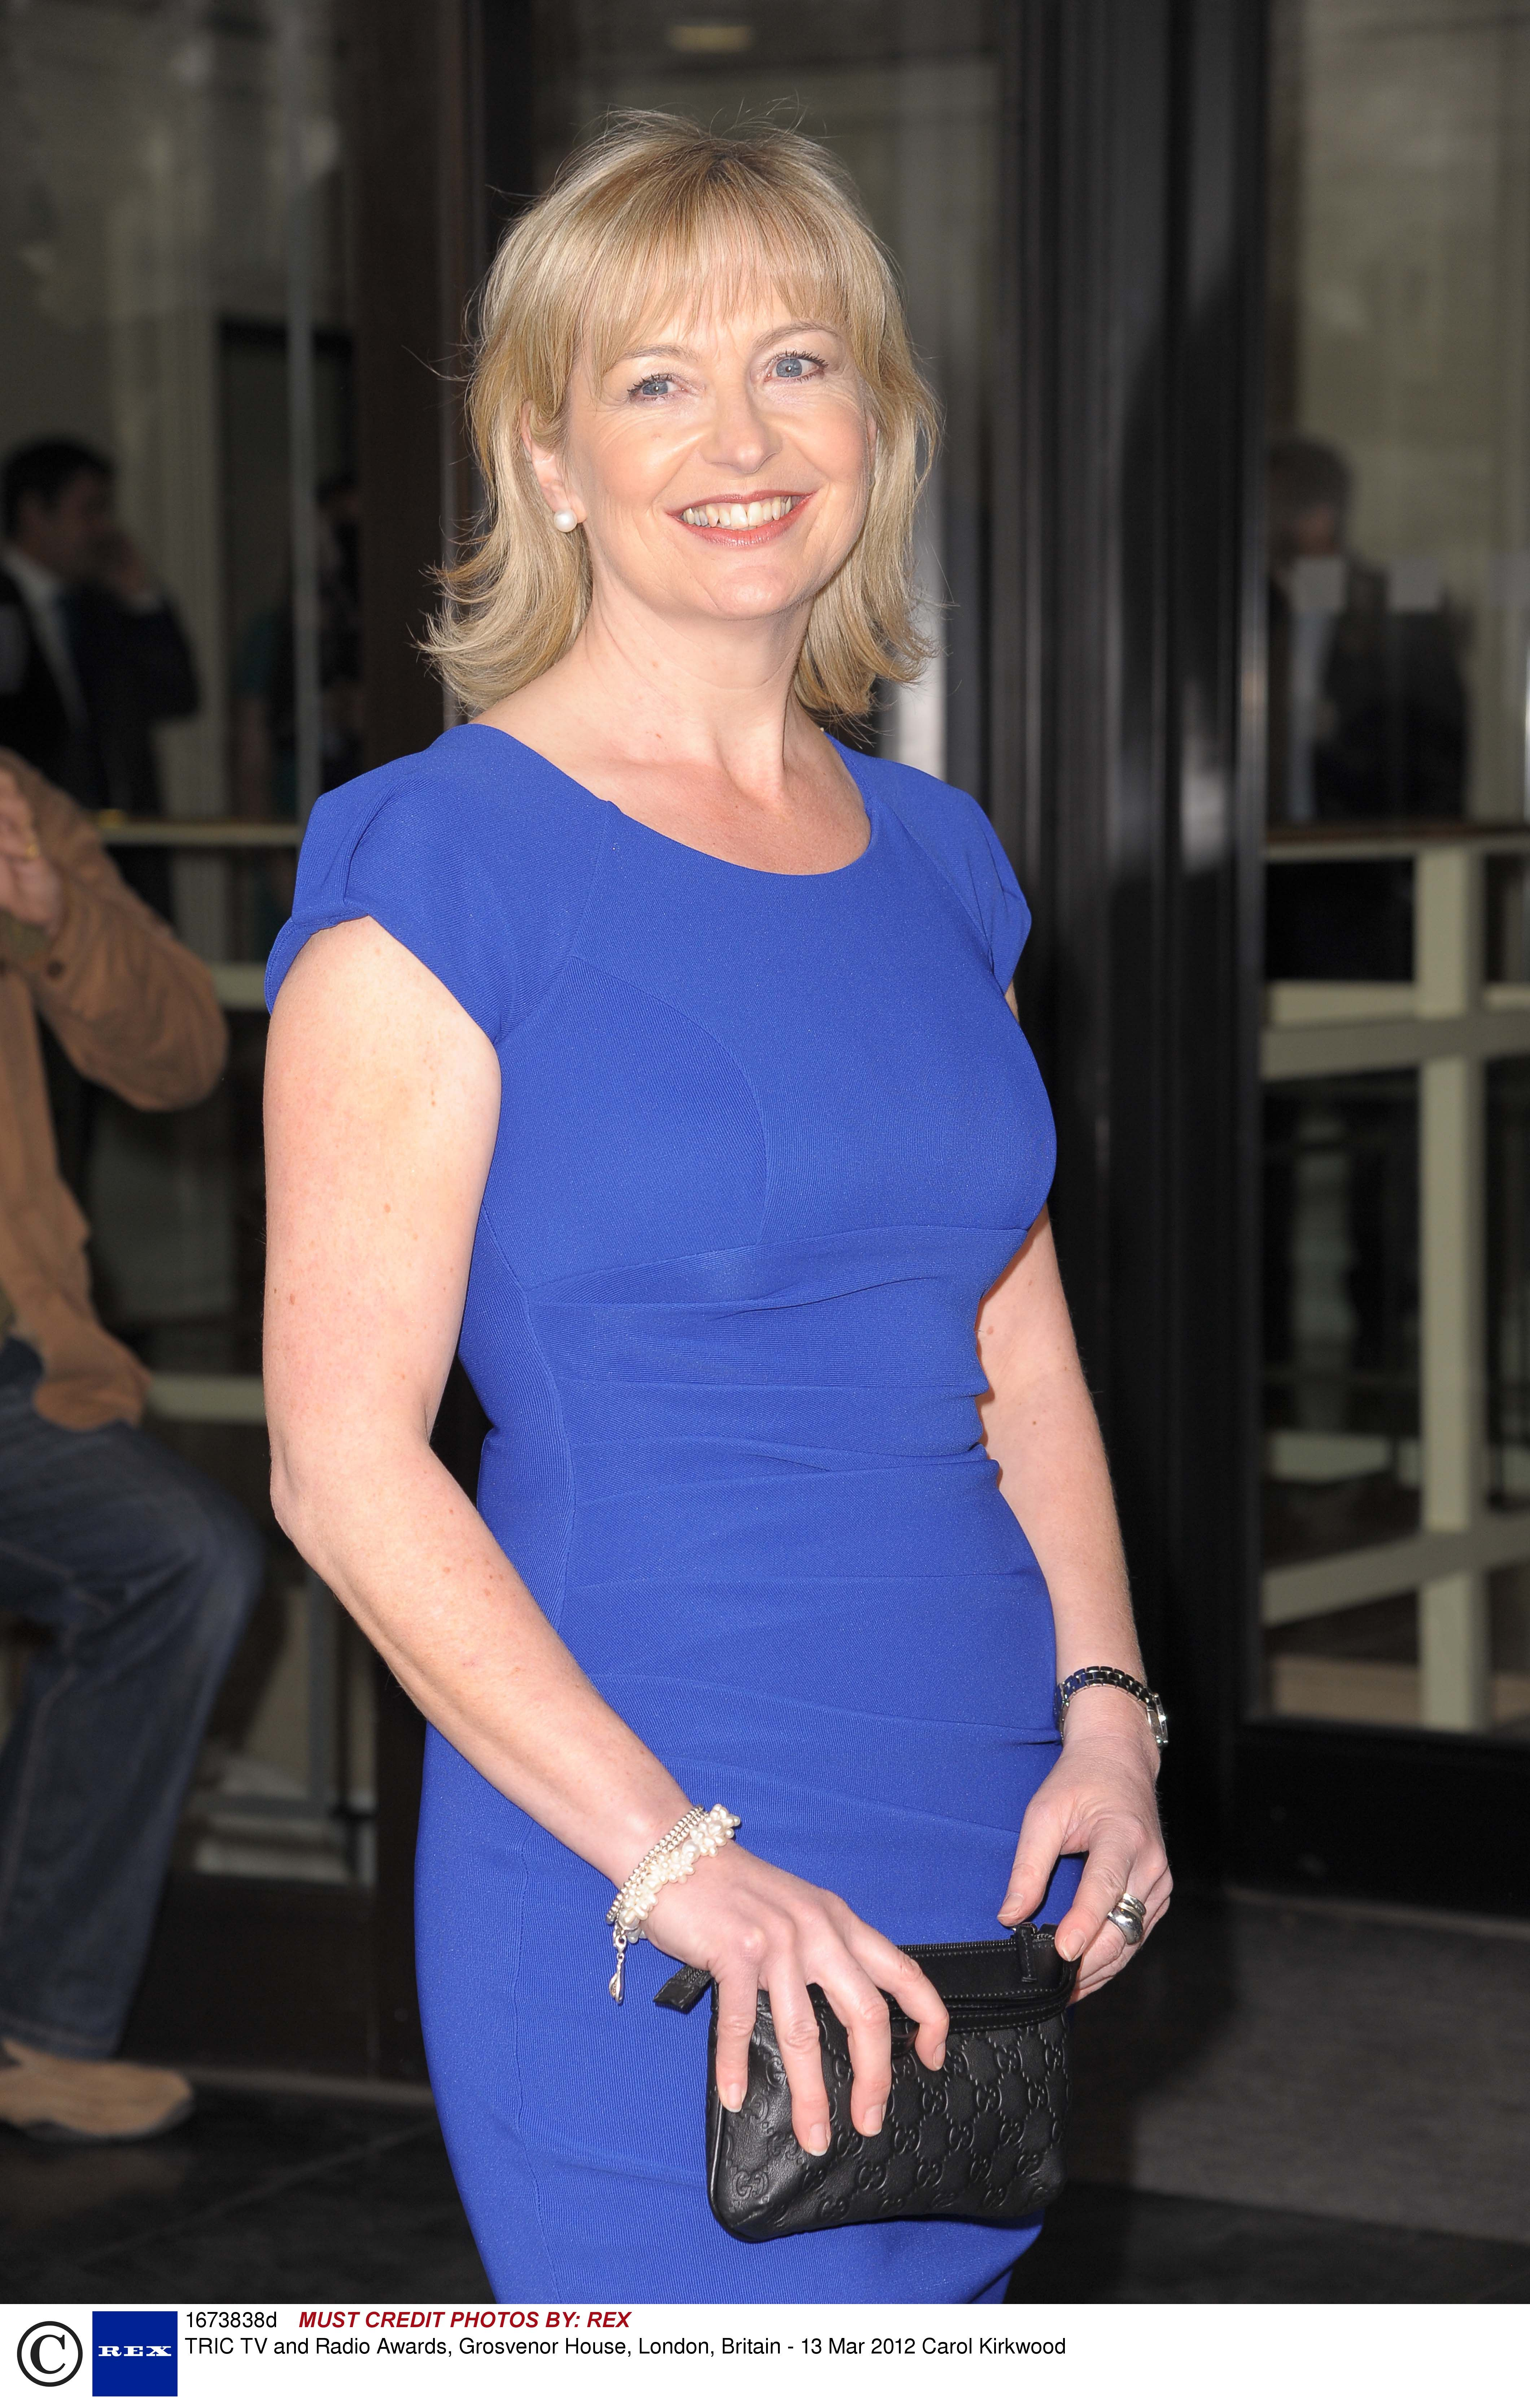 Pussy Pictures Carol Kirkwood naked photo 2017